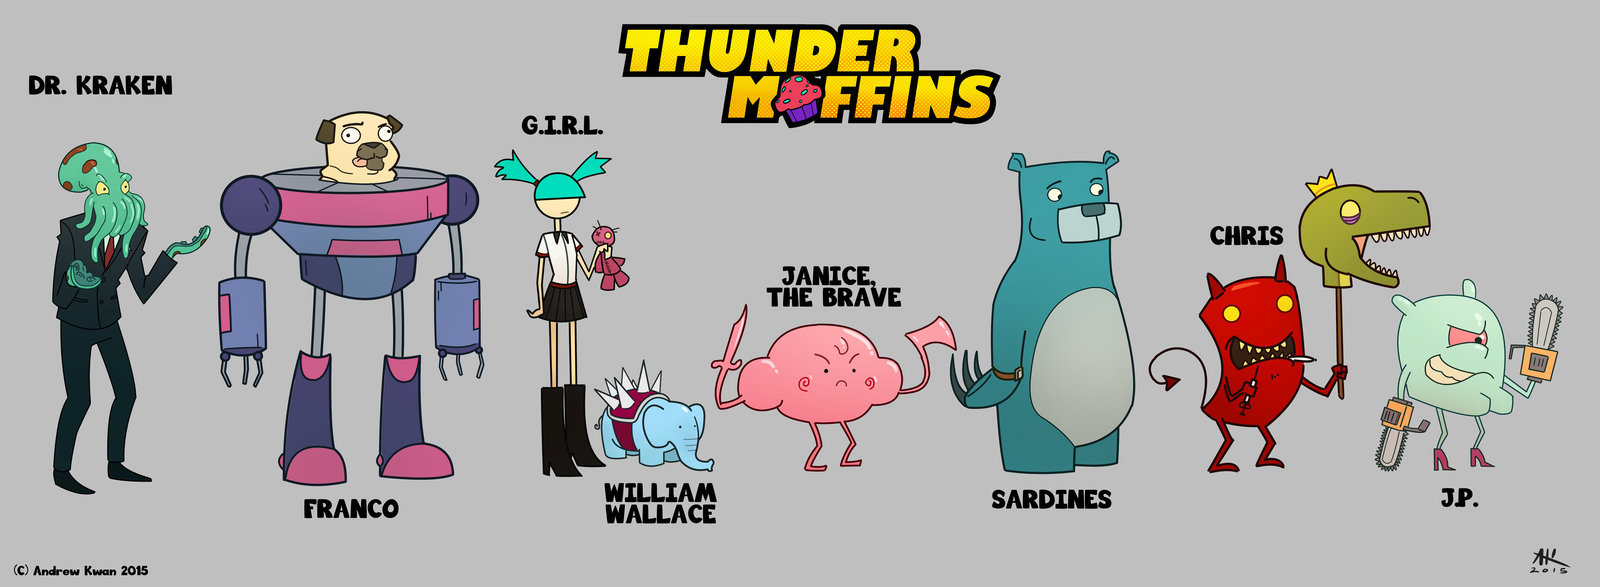 Andrew kwan thunder muffins character line up by andrewkwan d8g284a